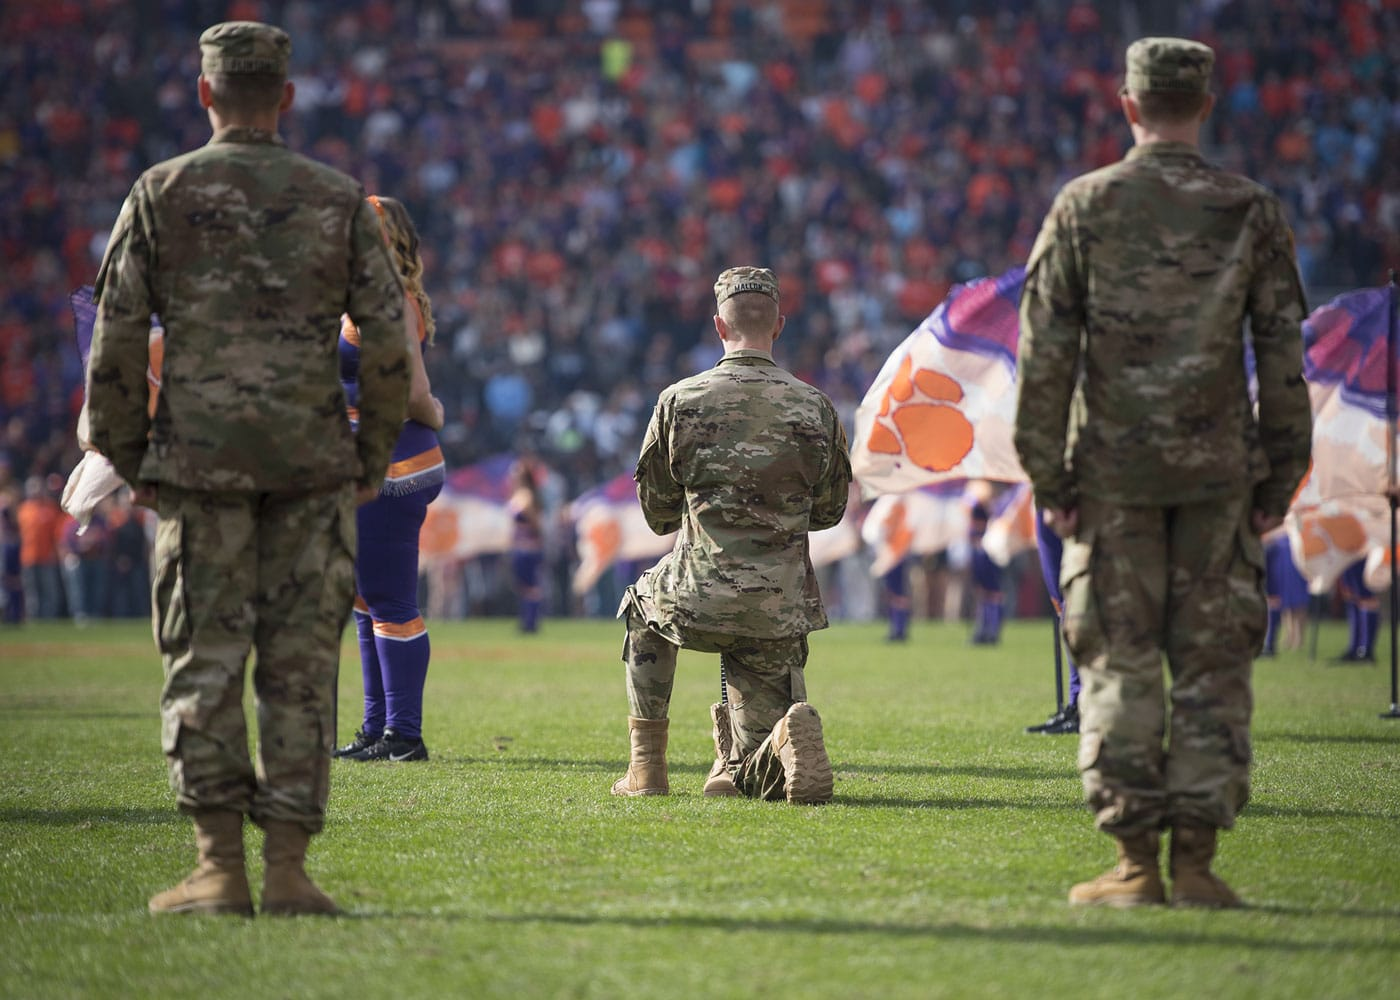 A cadet with the Clemson University Army Reserve Officers' Training Corps erects a Fallen Soldier Battle Cross during the half time ceremony of the 2017 Military Appreciation Game in Memorial Stadium.